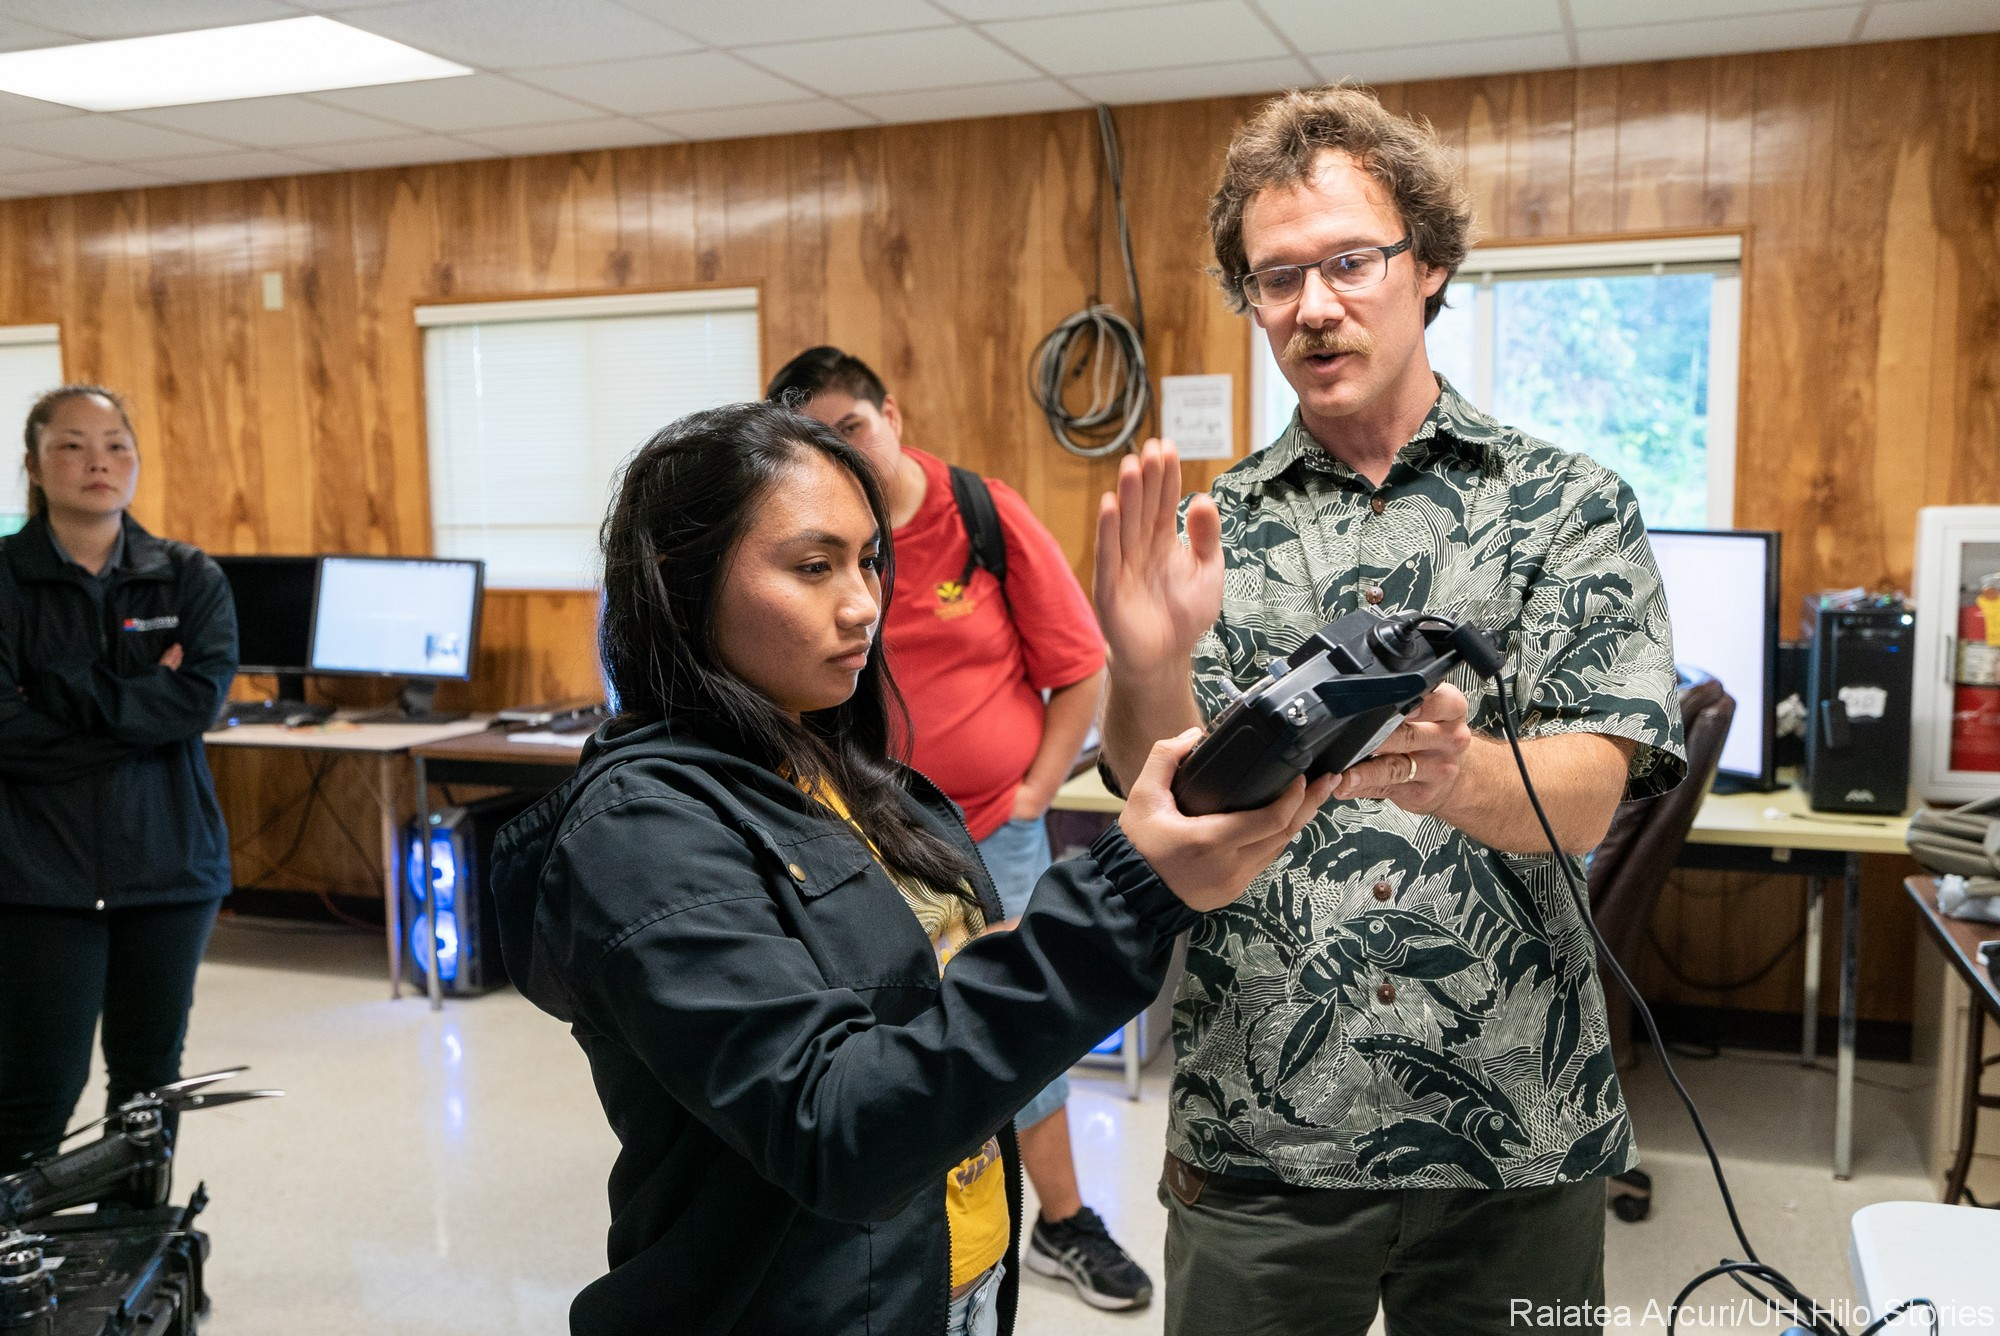 Student and professor, student holds controller.